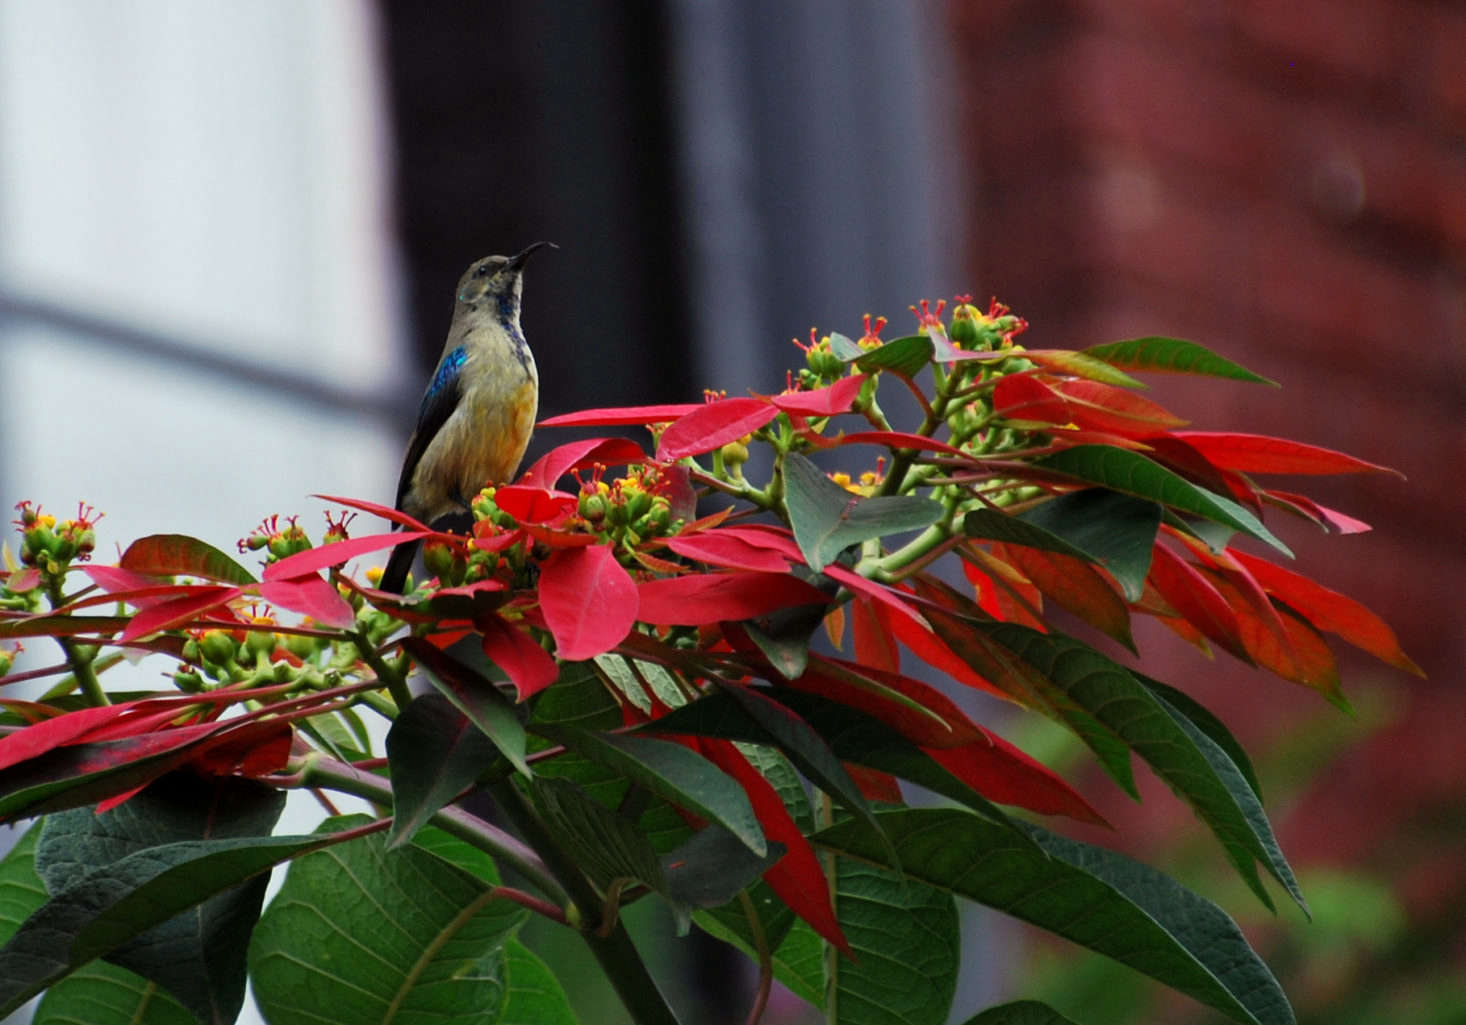 A bird perches on a poinsettia growing outdoors in Rwanda. Photograph by Kate via Flickr.